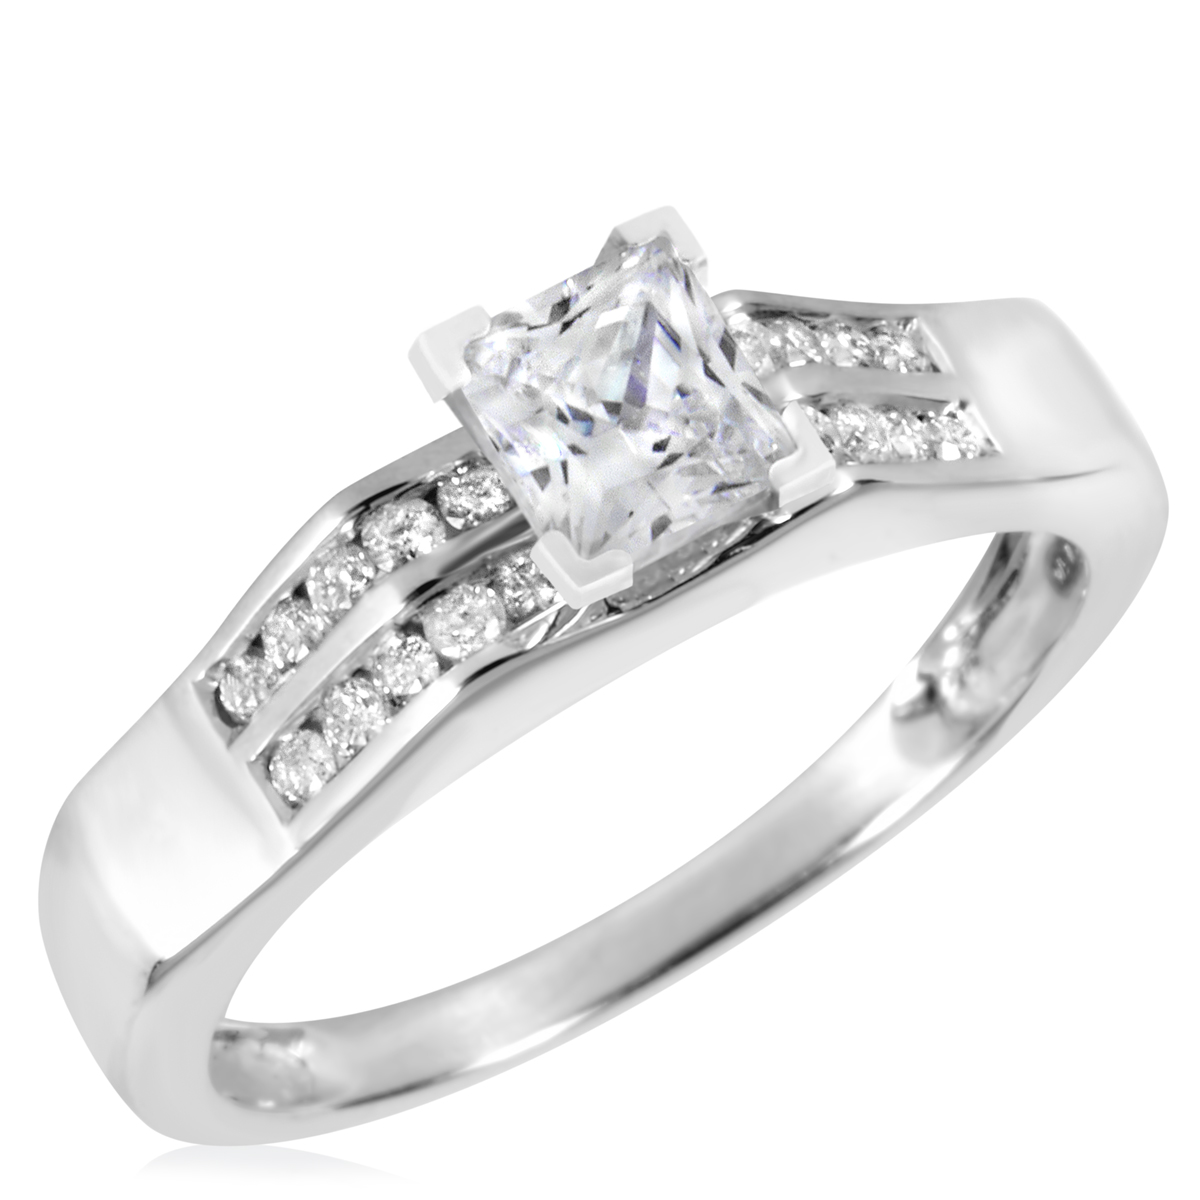 1 CT. T.W. Diamond Ladies Engagement Ring 10K White Gold- Size 8